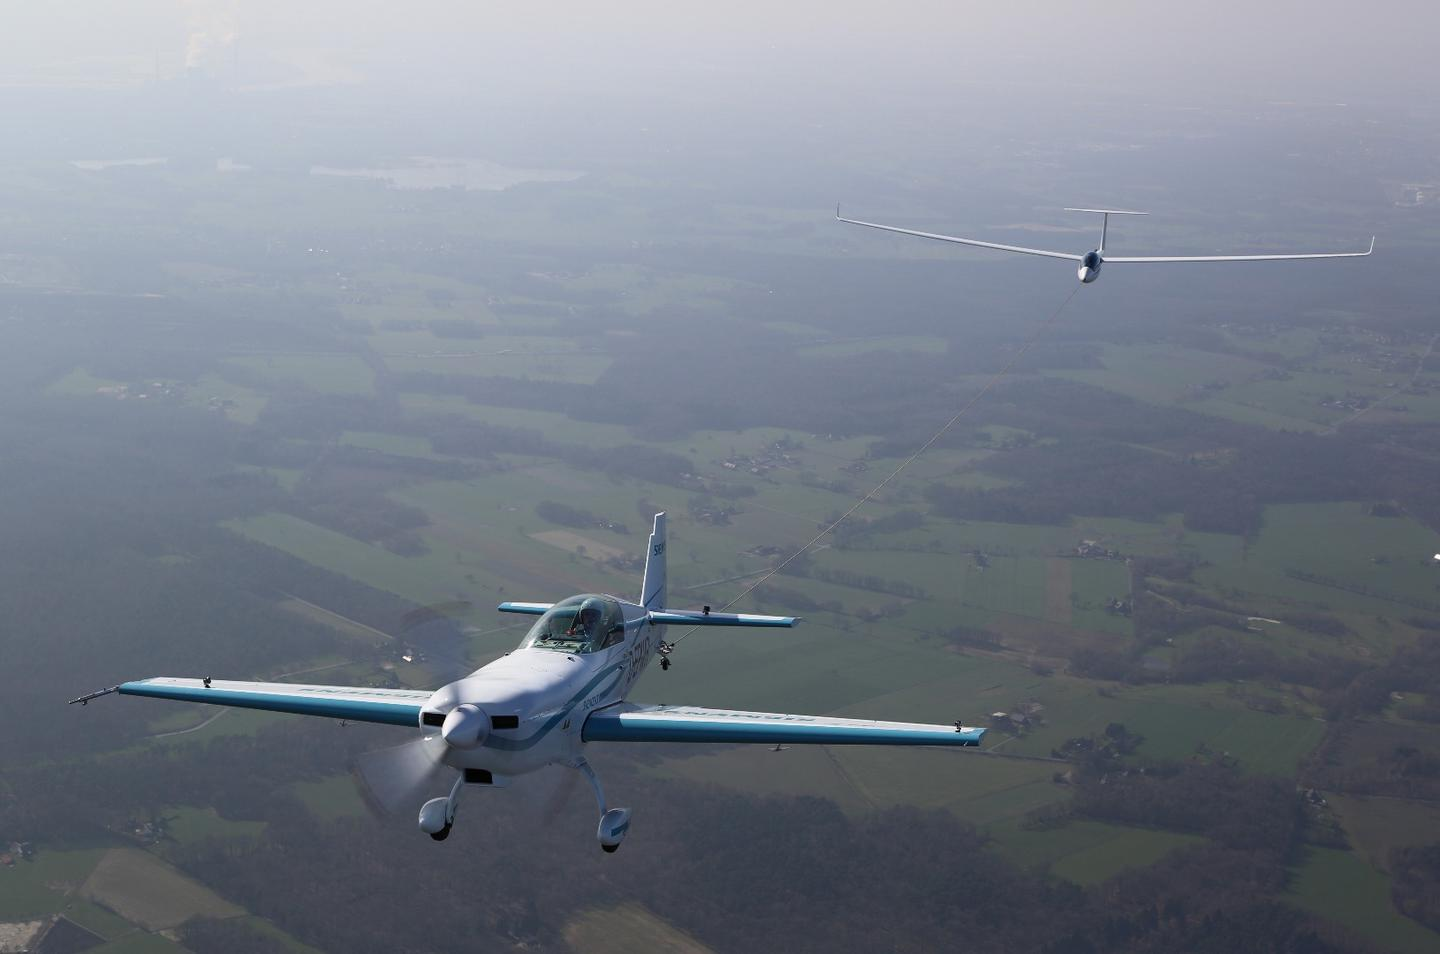 The Extra 330LE electric plane towed the type LS8-neo glider up to 600 meters in just 76 seconds